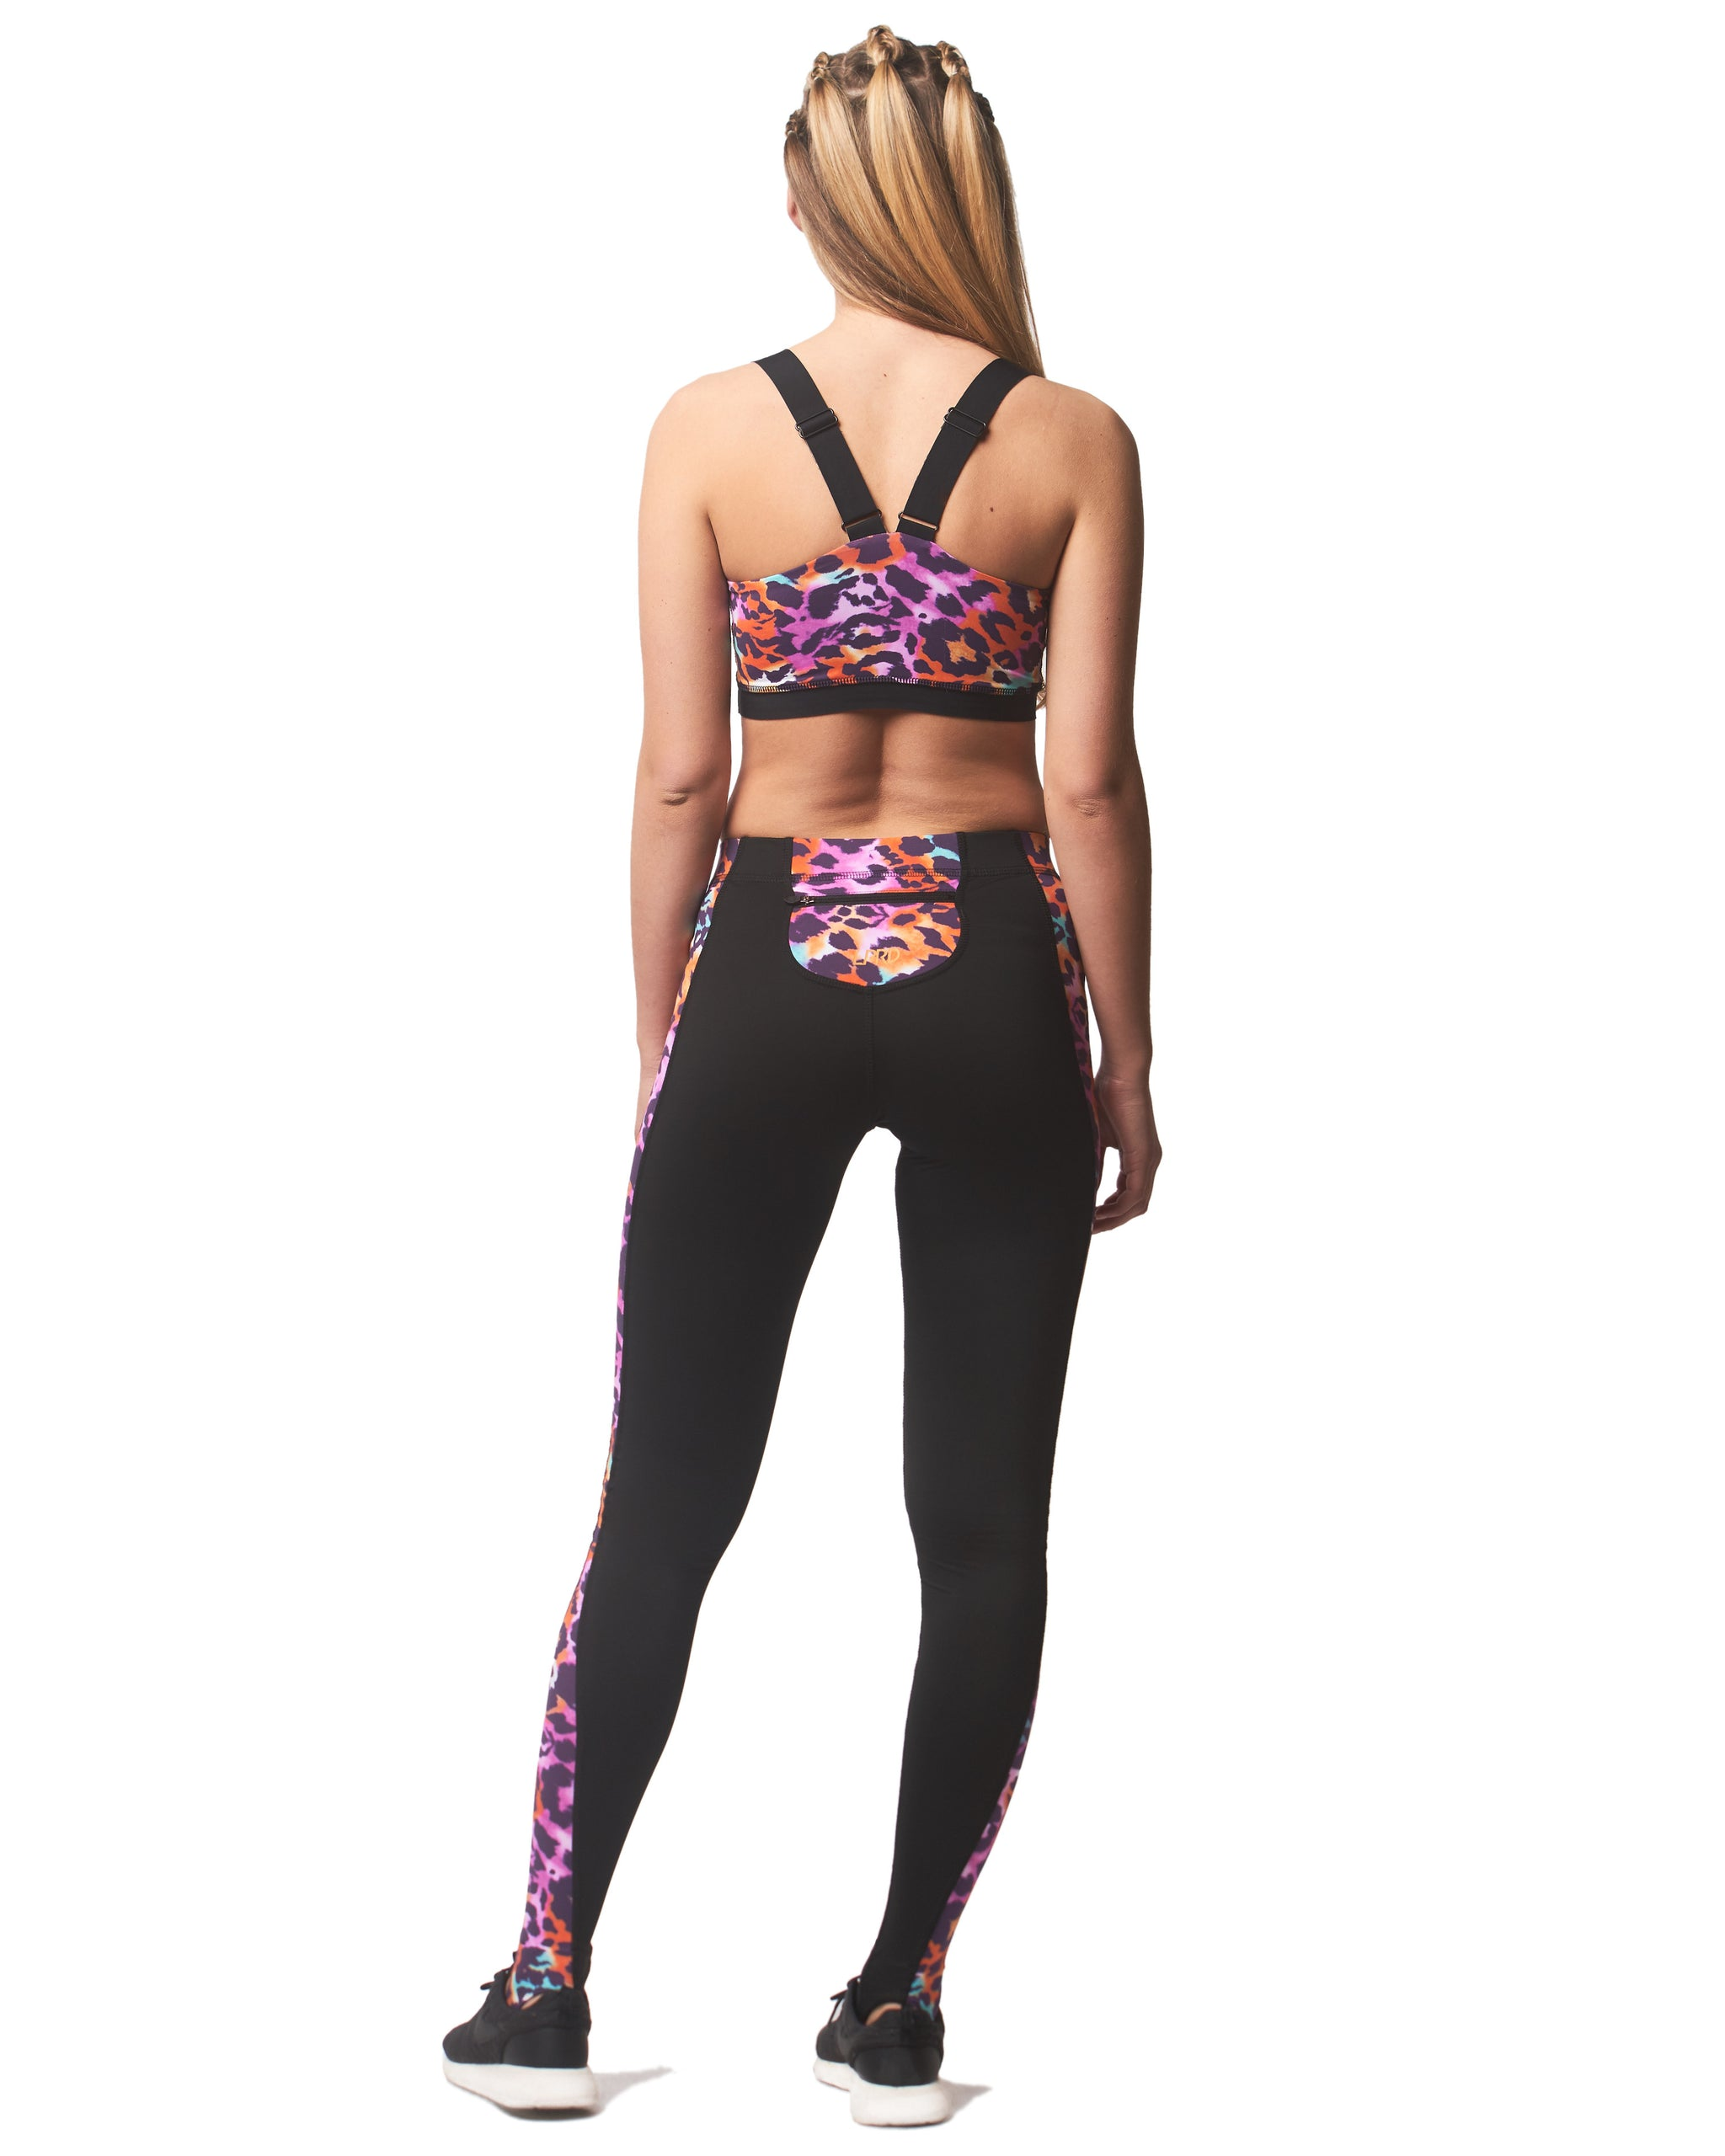 LPRD Pink Leopard Panel Leggings | Back View